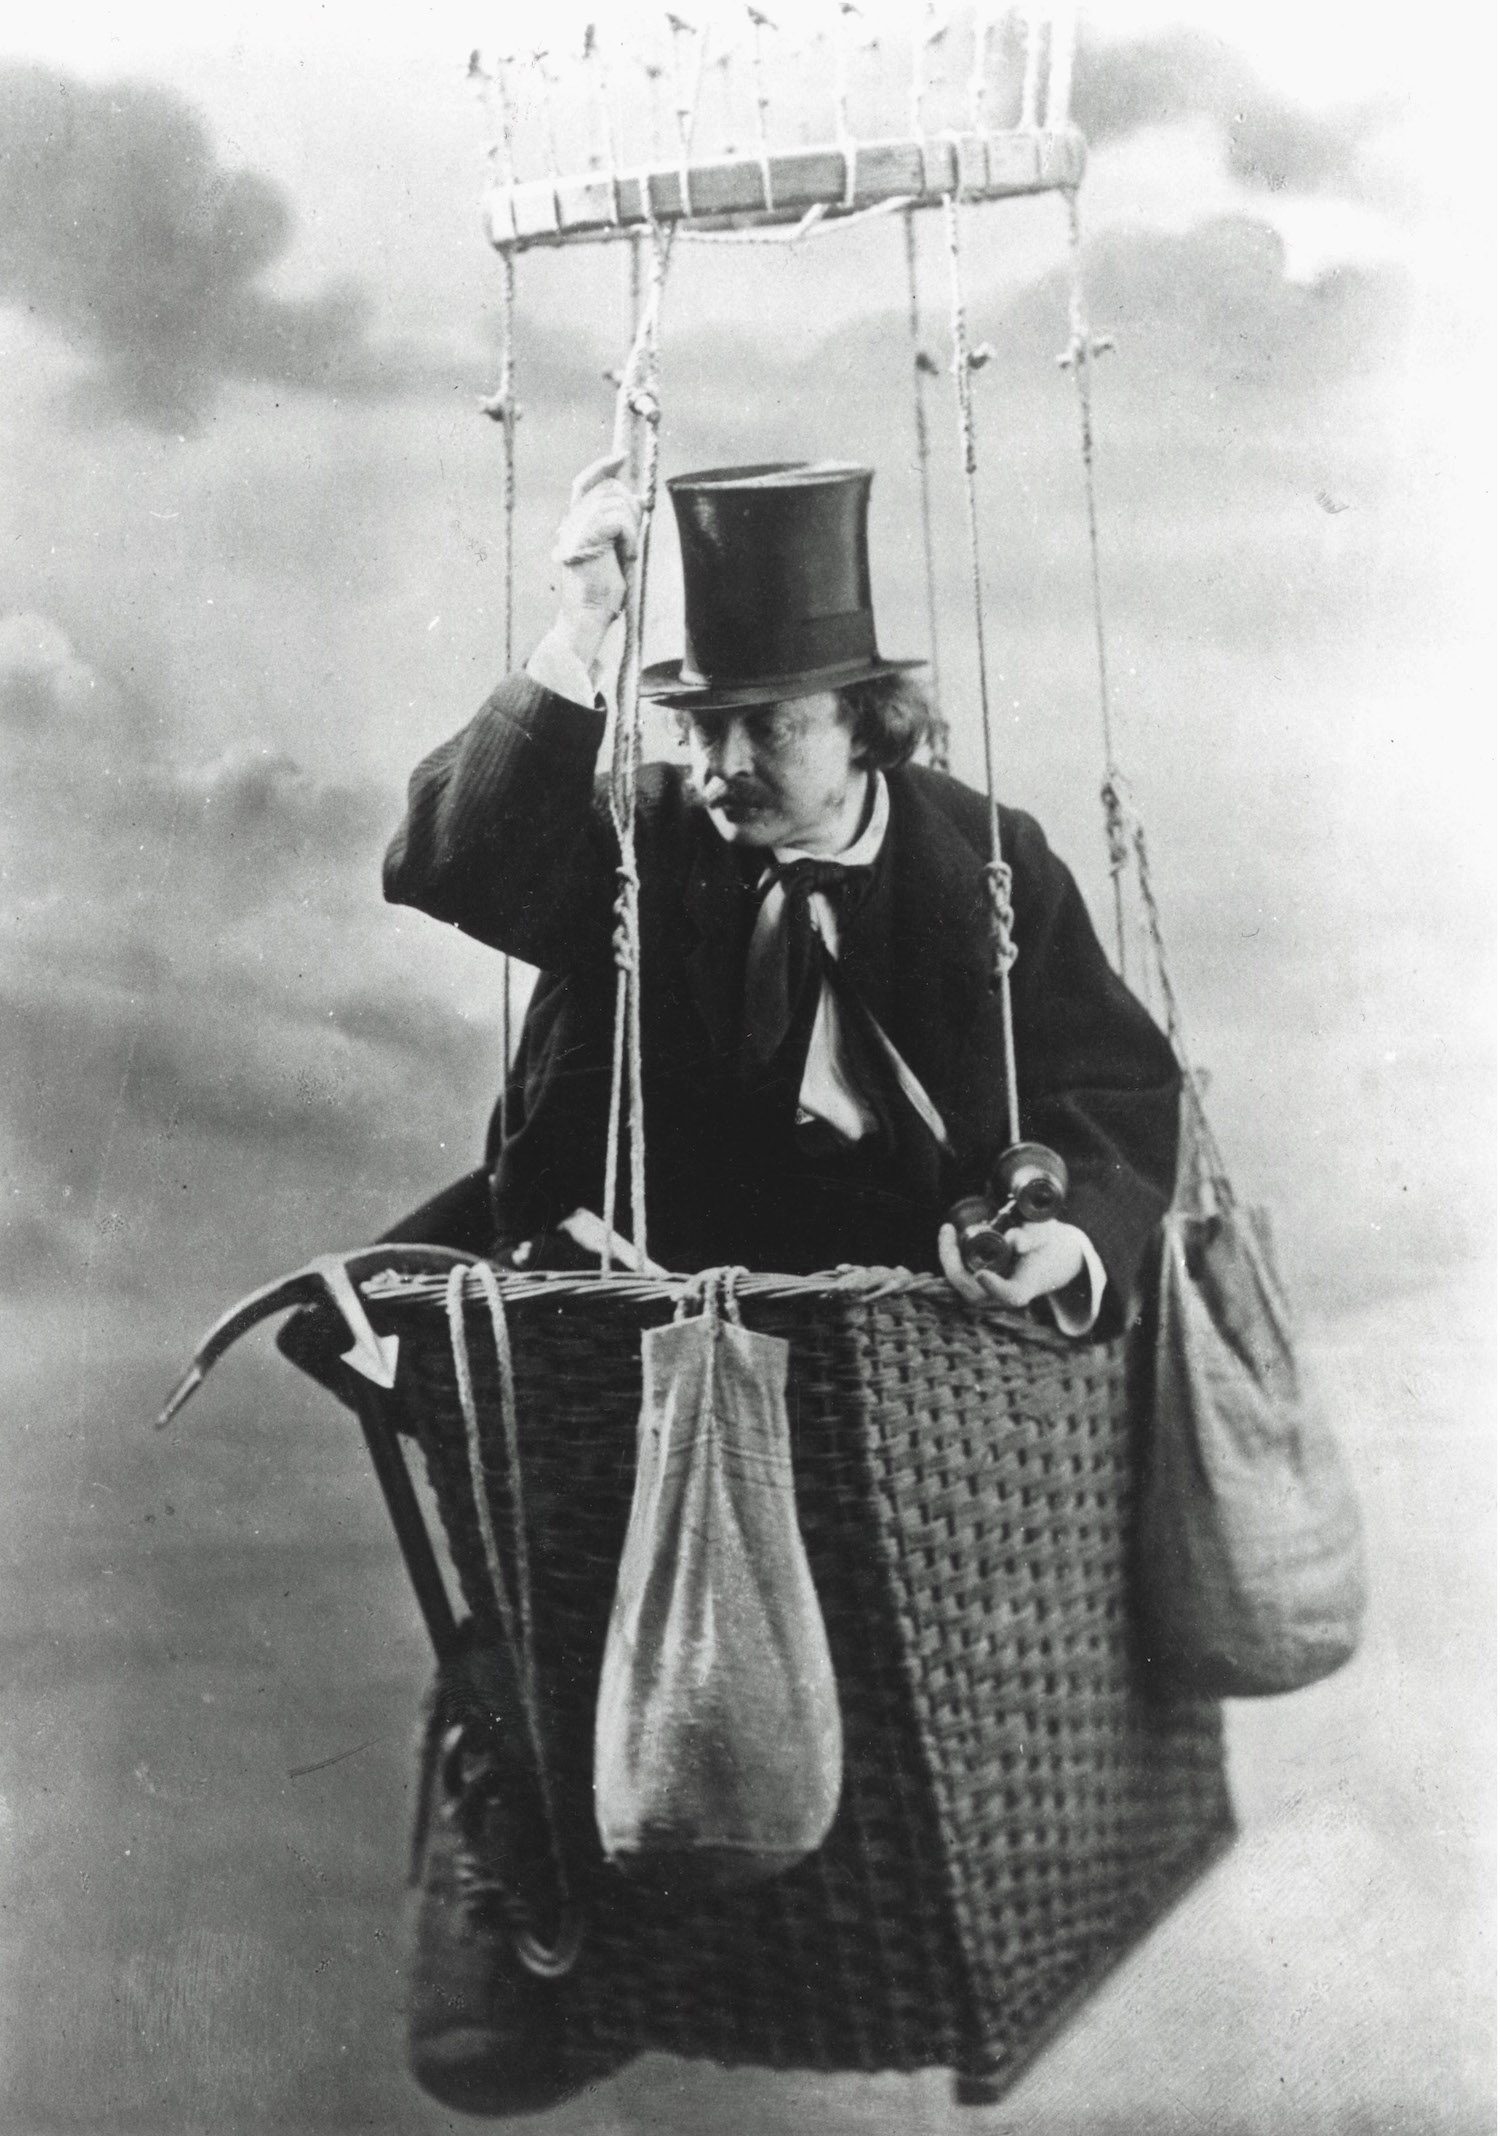 Felix NADAR, 1820-1910, famous photographer, in the gondola of his balloon, photograph. Nadar built his Géant in 1858 and launched it in 1863, the year Jules Verne published Five weeks in a balloon